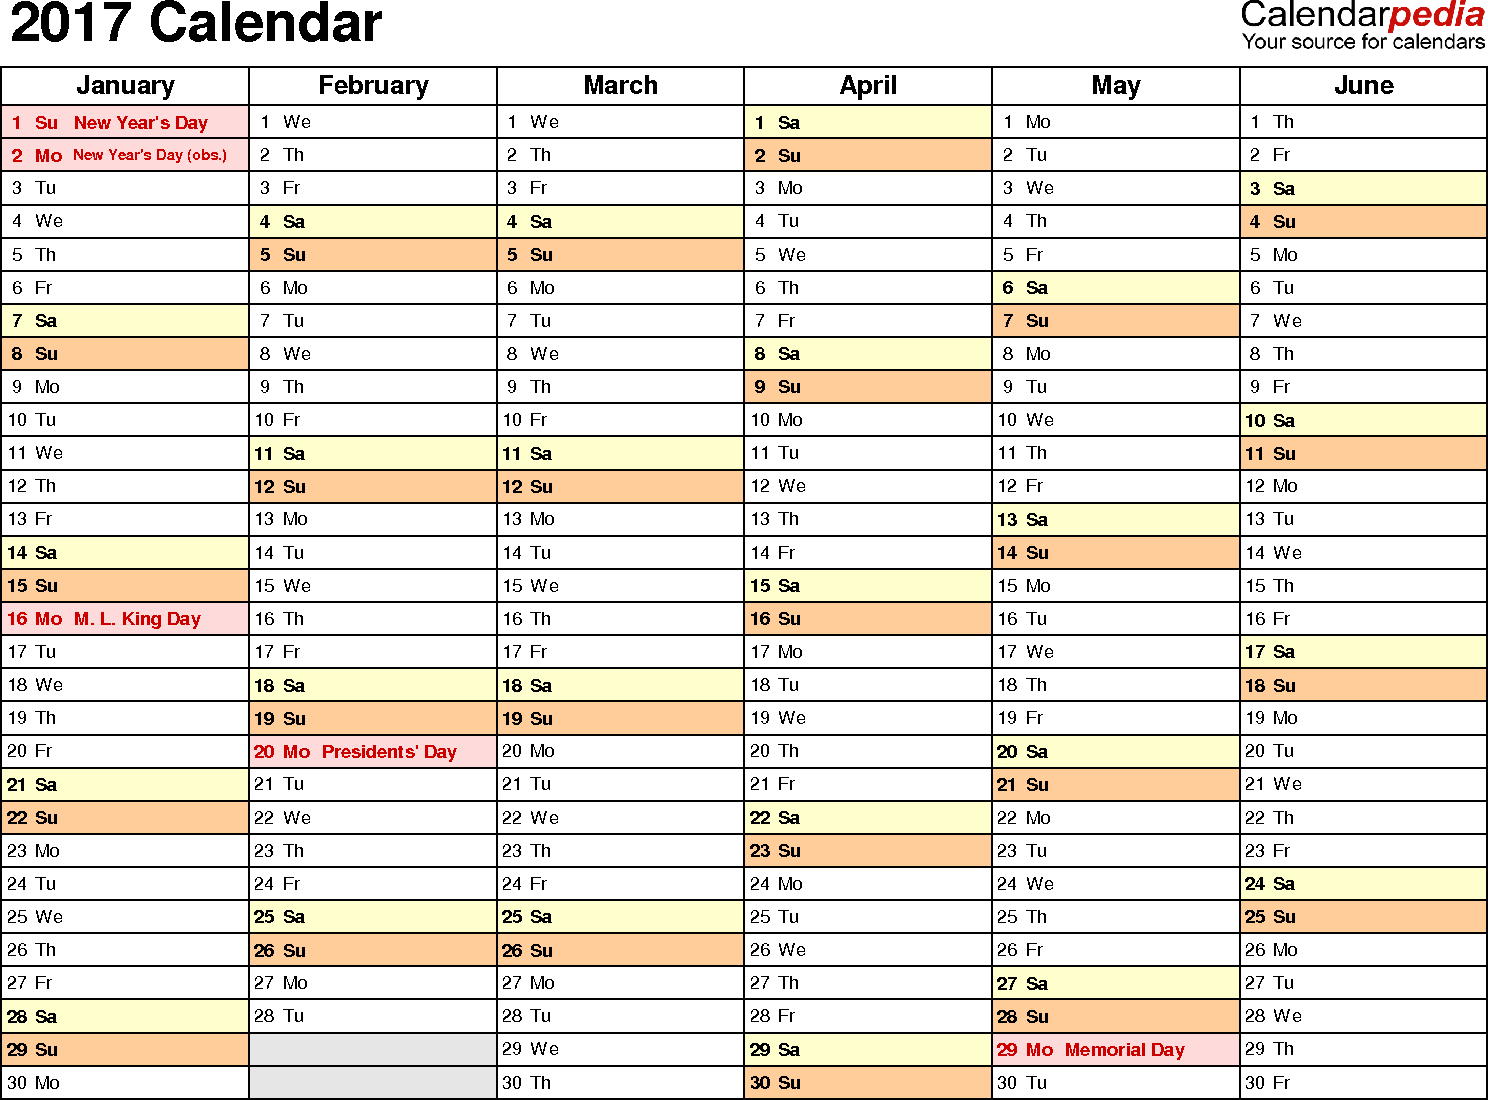 Ediblewildsus  Marvellous  Calendar  Download  Free Printable Excel Templates Xls With Glamorous Template   Calendar For Excel Months Horizontally  Pages Landscape Orientation With Enchanting Calculation In Excel Also Inserting Columns In Excel In Addition Loan Amortization Formula Excel And Drop Down Menus Excel As Well As Excel Java Additionally Excel  Shortcuts Pdf From Calendarpediacom With Ediblewildsus  Glamorous  Calendar  Download  Free Printable Excel Templates Xls With Enchanting Template   Calendar For Excel Months Horizontally  Pages Landscape Orientation And Marvellous Calculation In Excel Also Inserting Columns In Excel In Addition Loan Amortization Formula Excel From Calendarpediacom